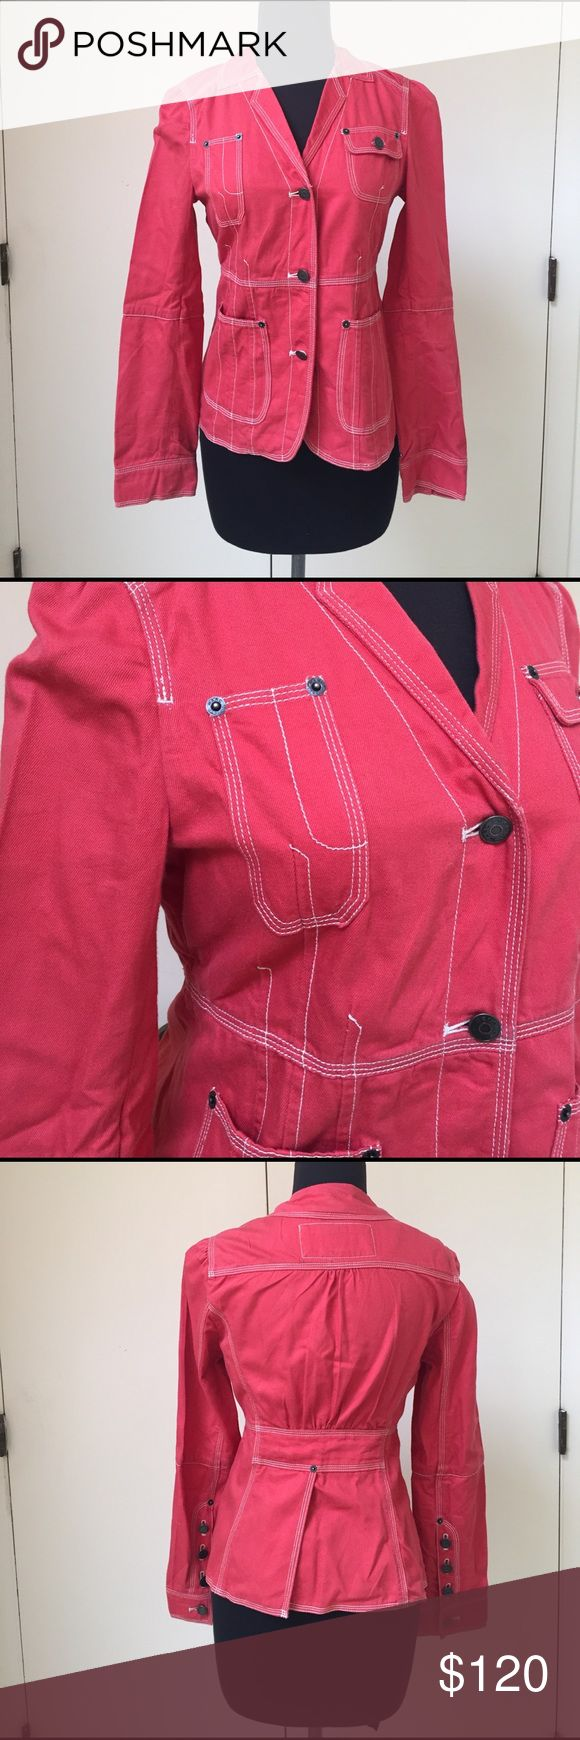 Marc Jacobs Red Denim Jacket Adorable red Denim jacket with split panel back. Fits like a 4/6. Make an offer! Marc Jacobs Jackets & Coats